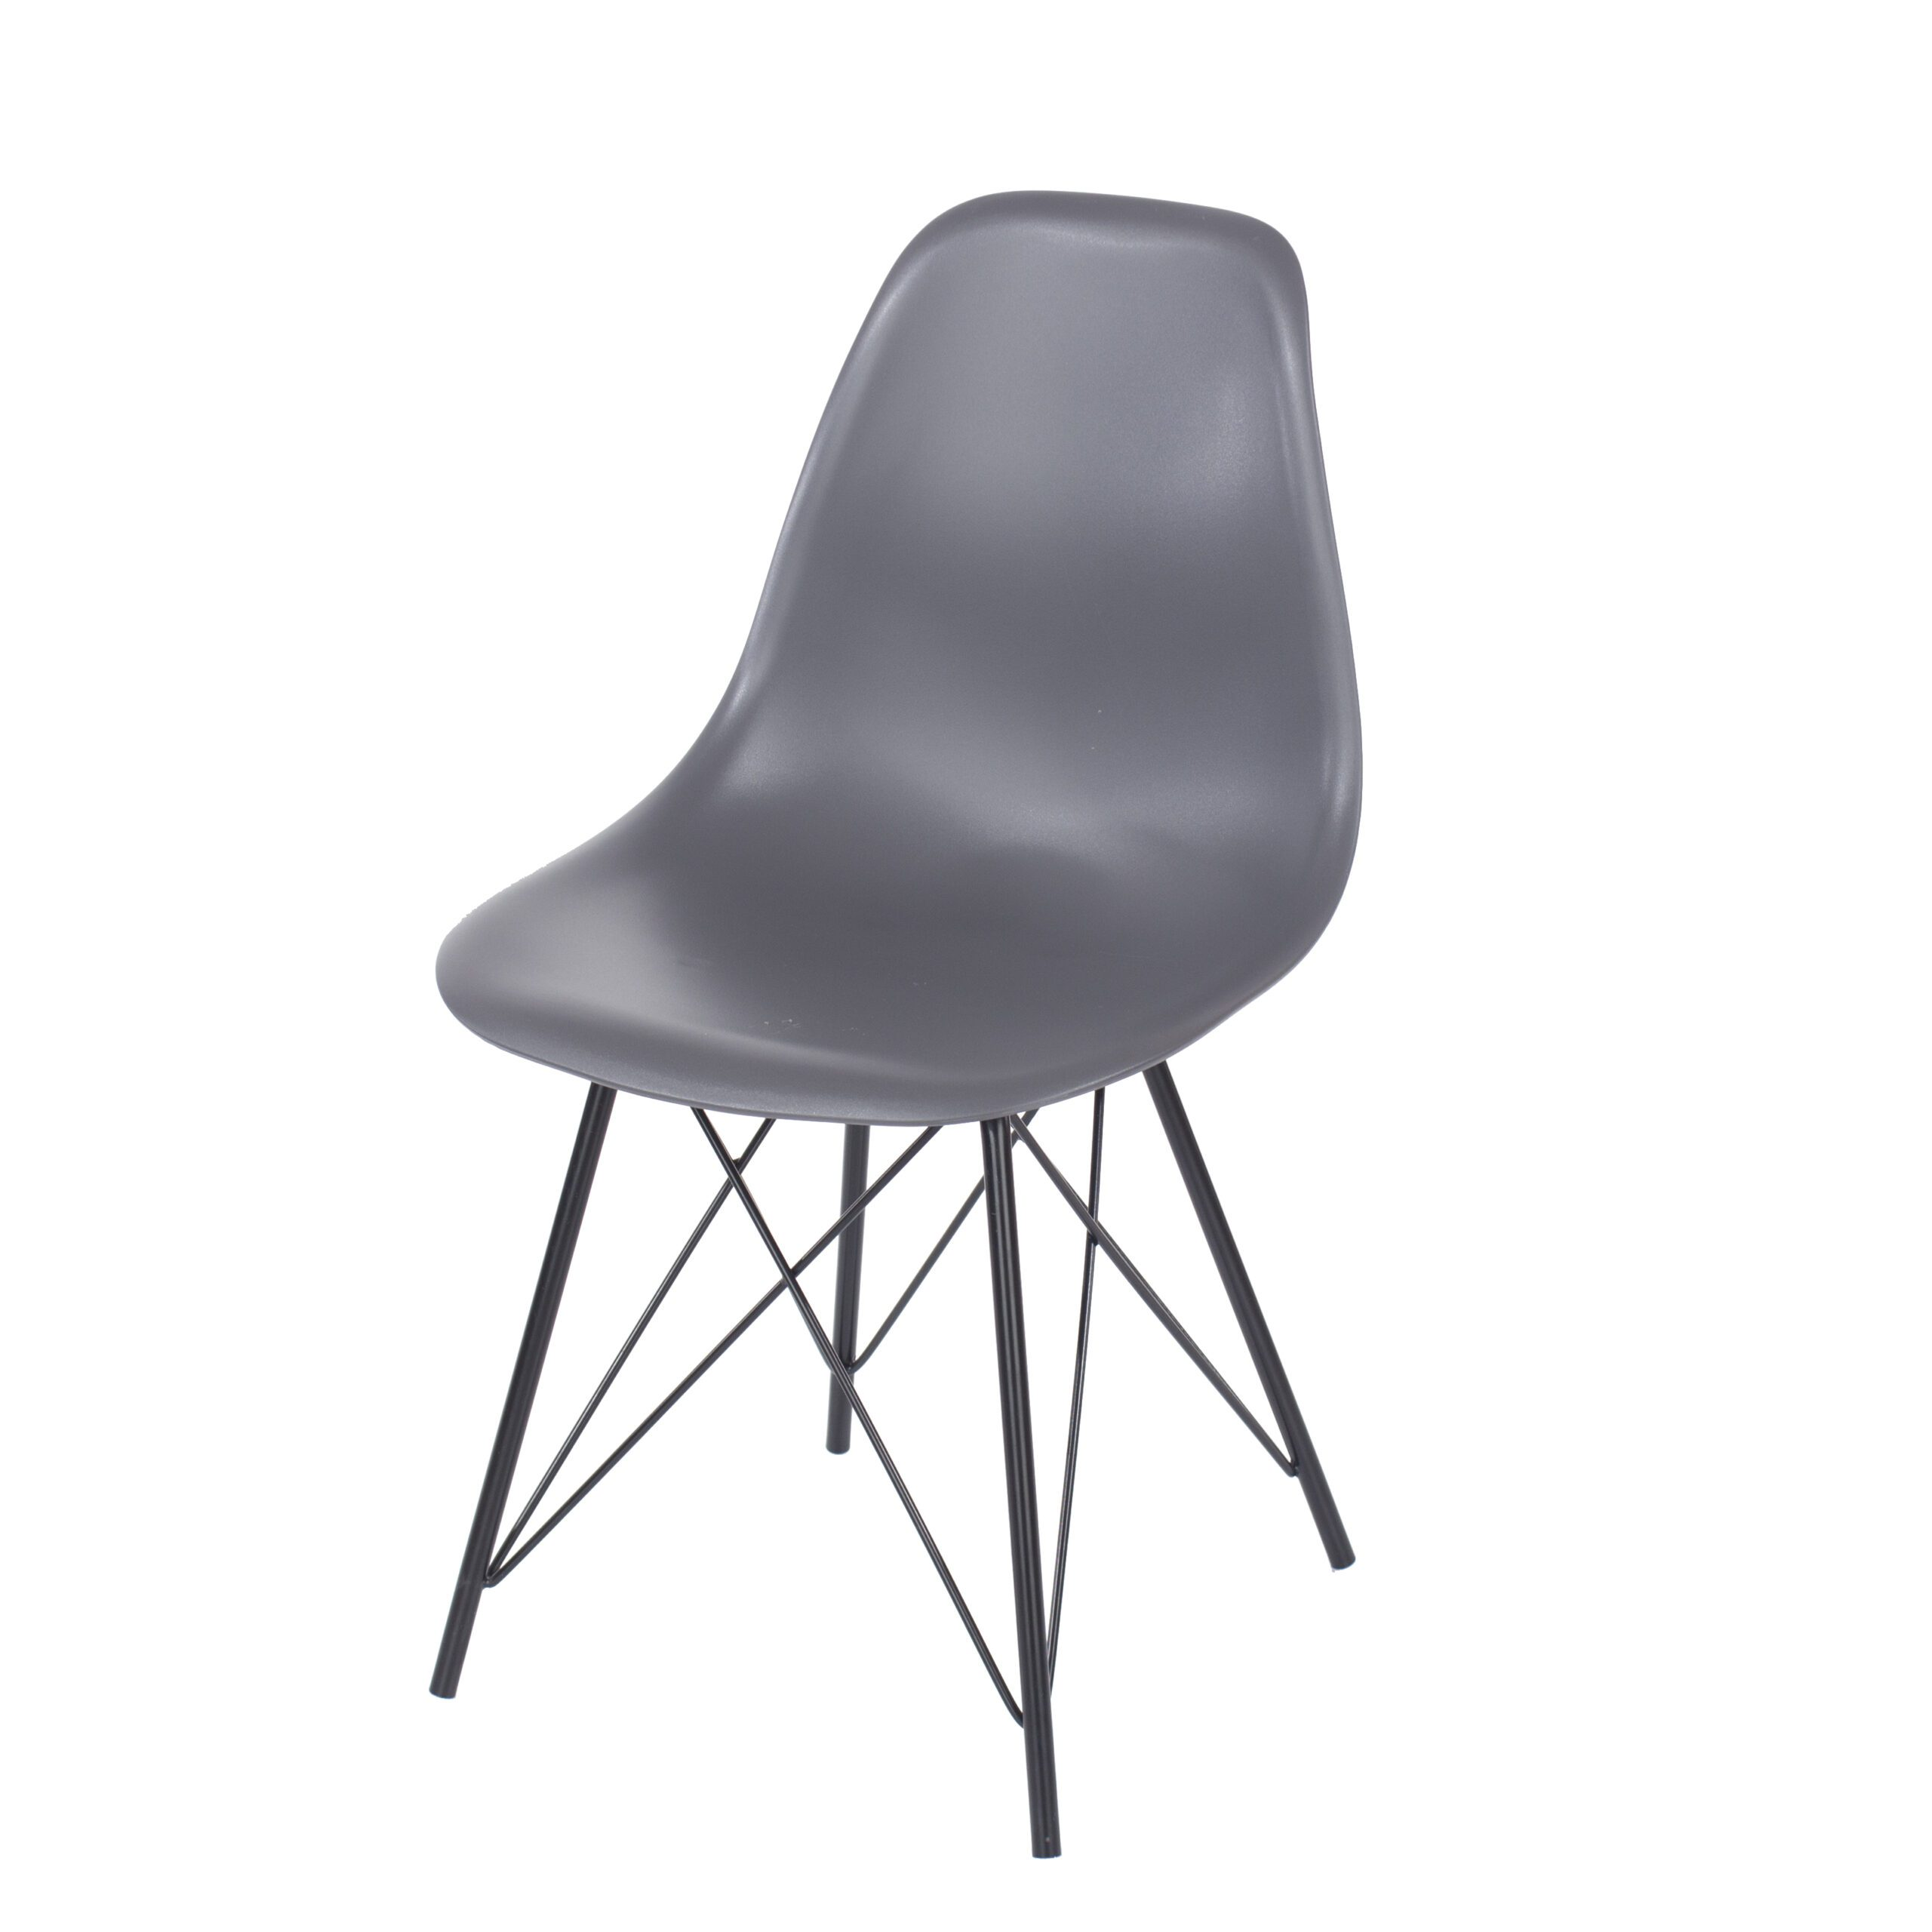 Penny charcoal plastic chairs with black metal legs (pair)